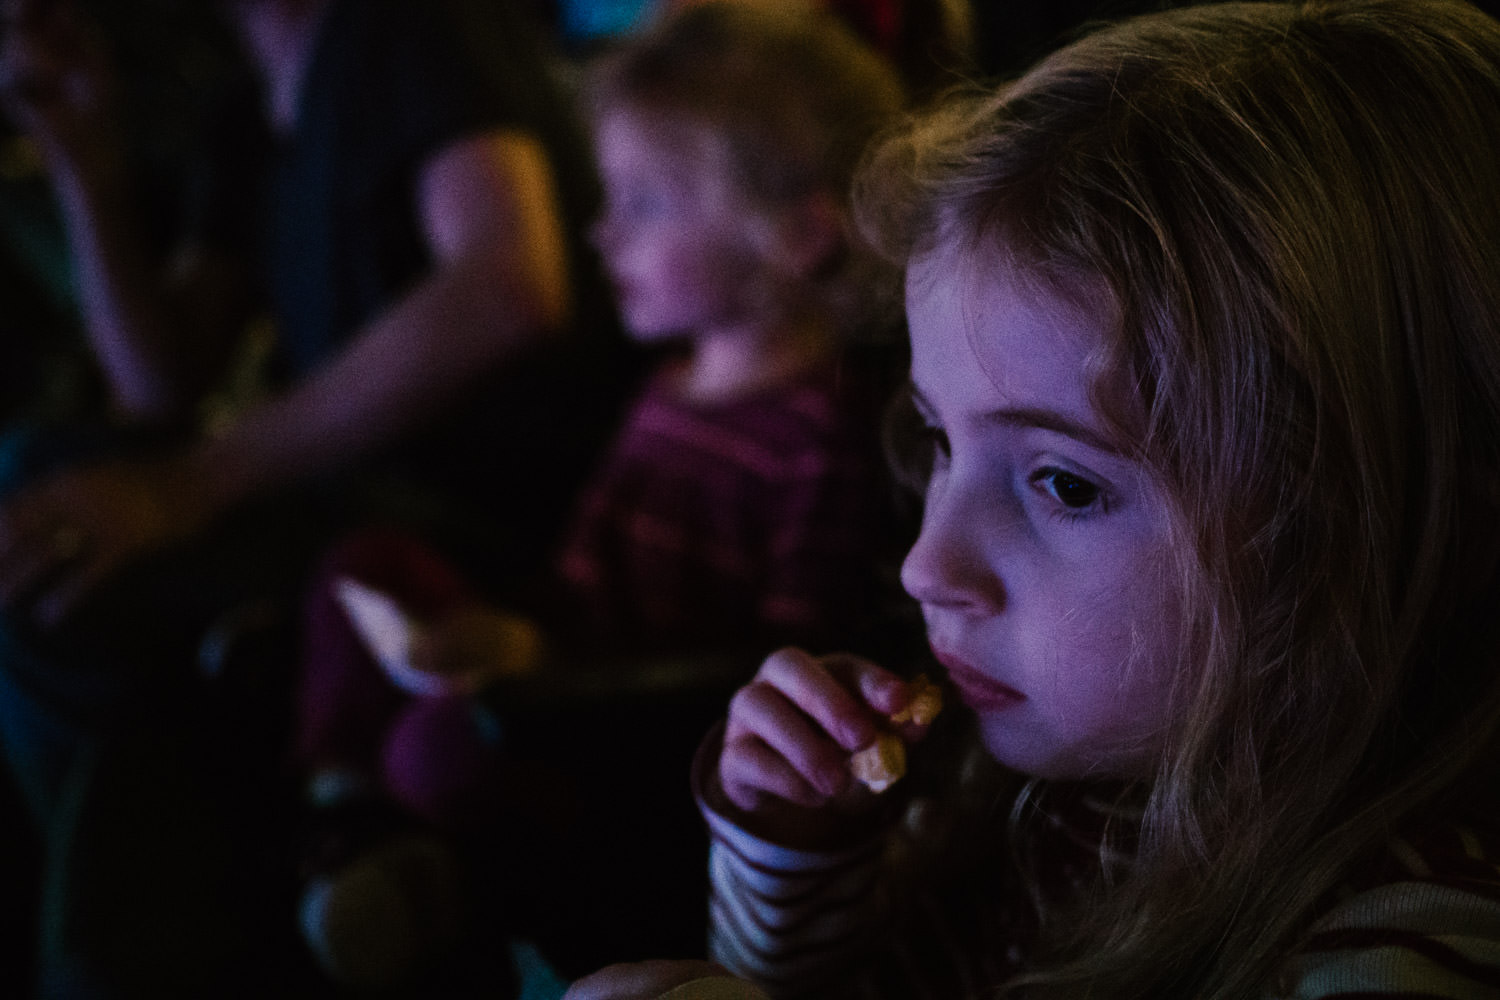 A little girl eats popcorn at Disney on Ice.